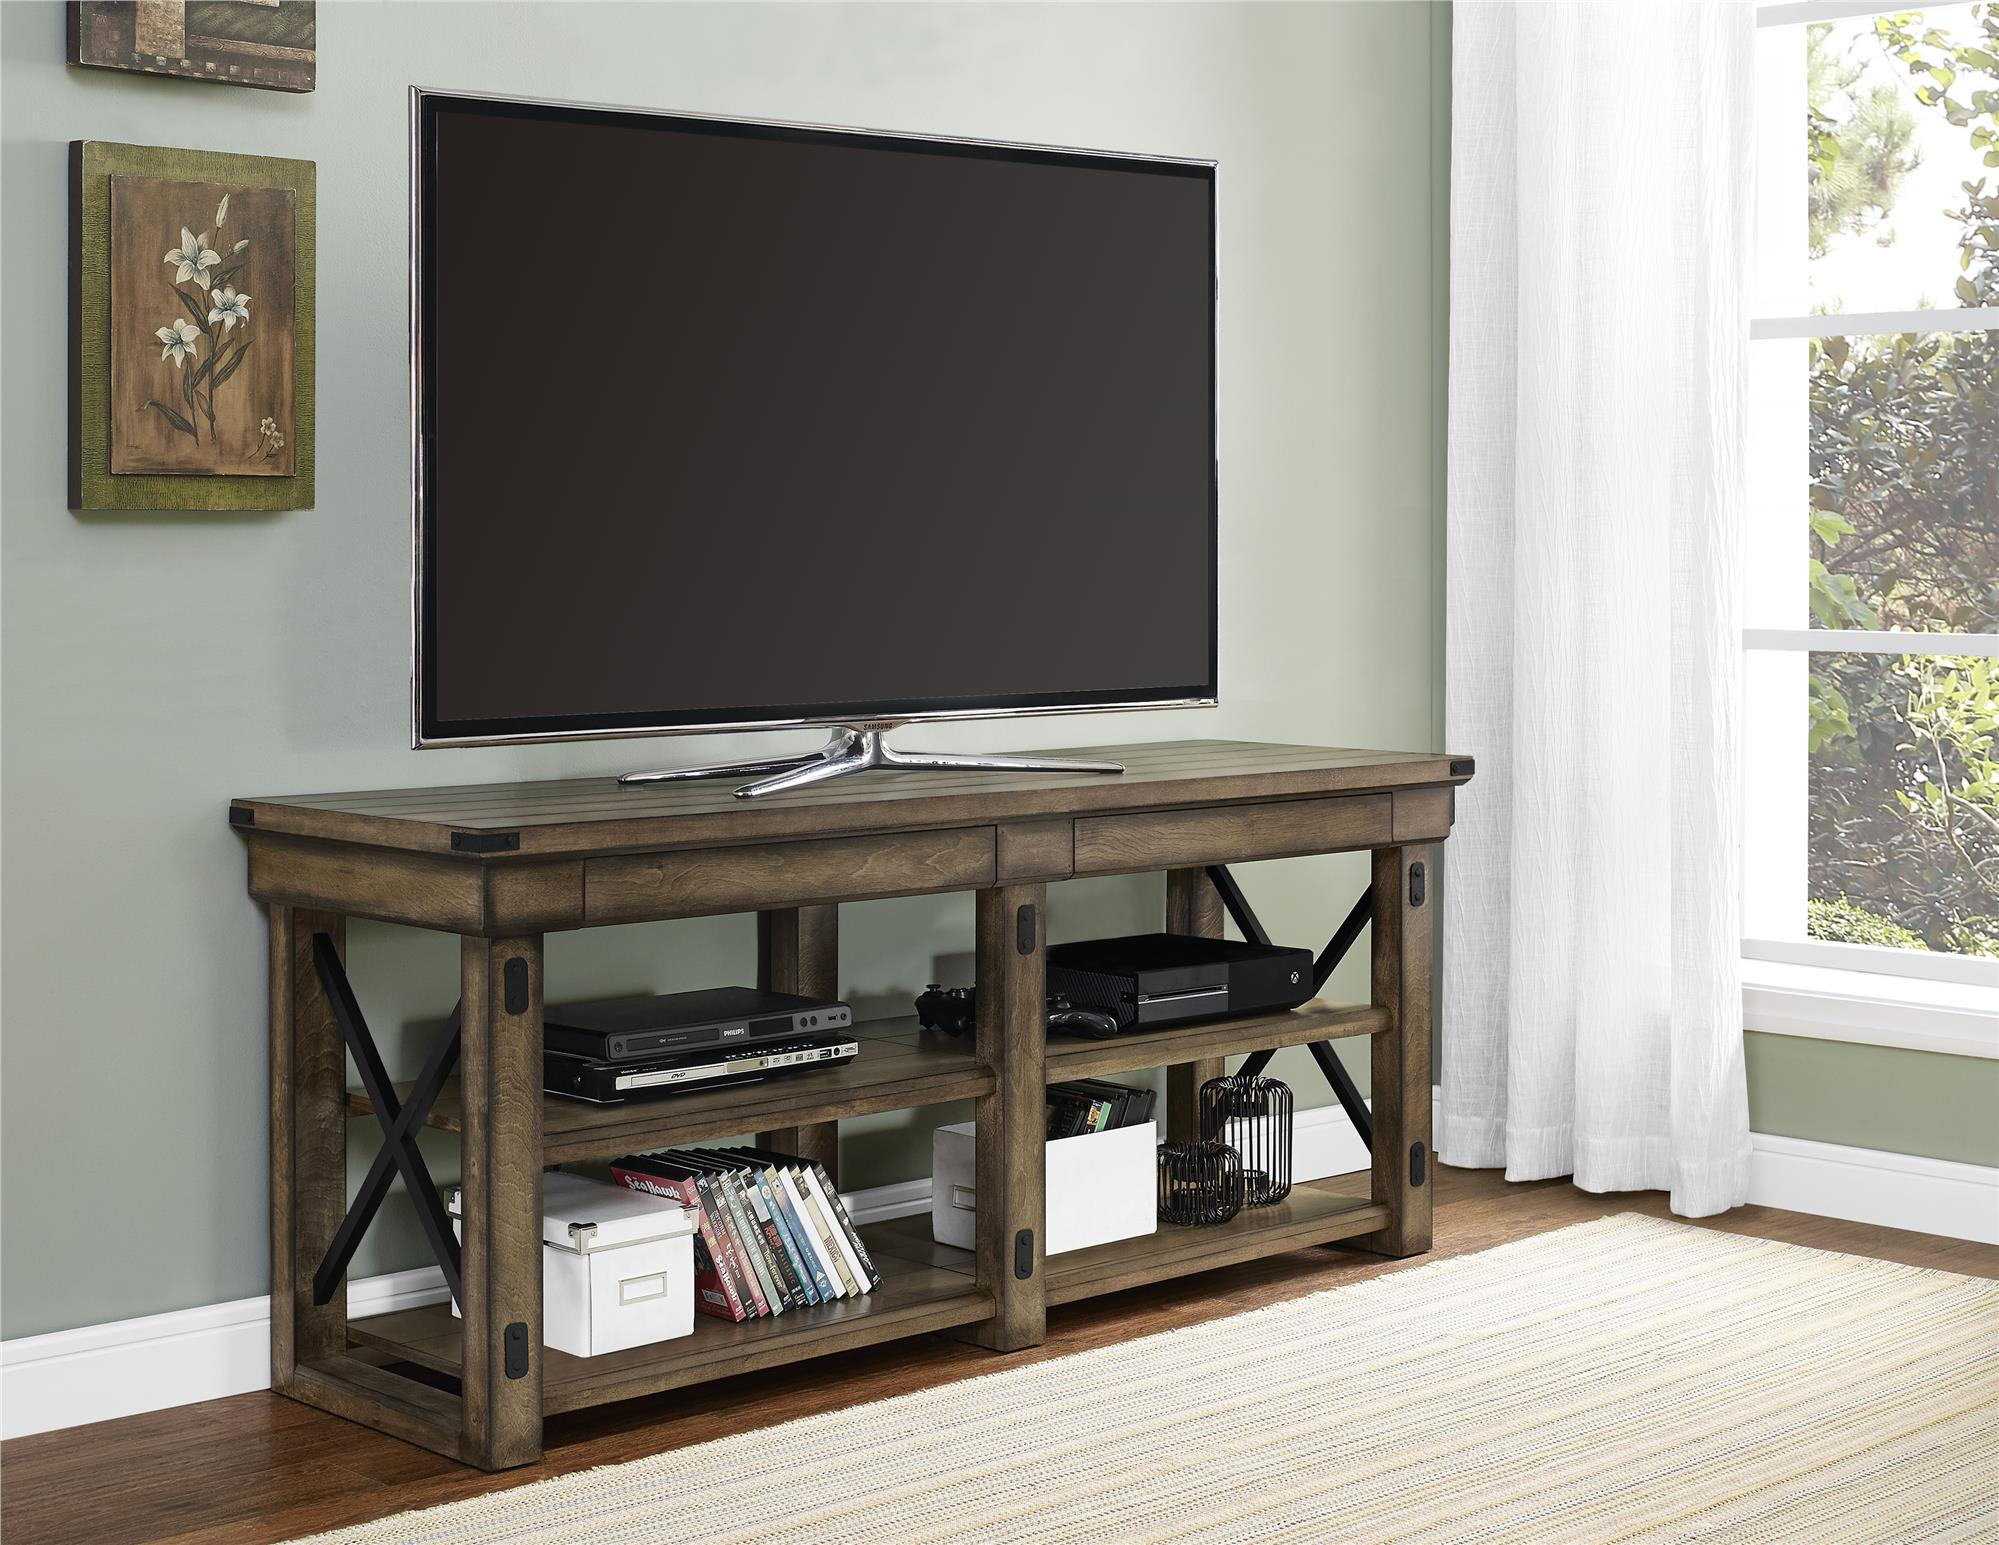 Dorel Home Furnishings Wildwood Rustic Gray Tv Stand Products